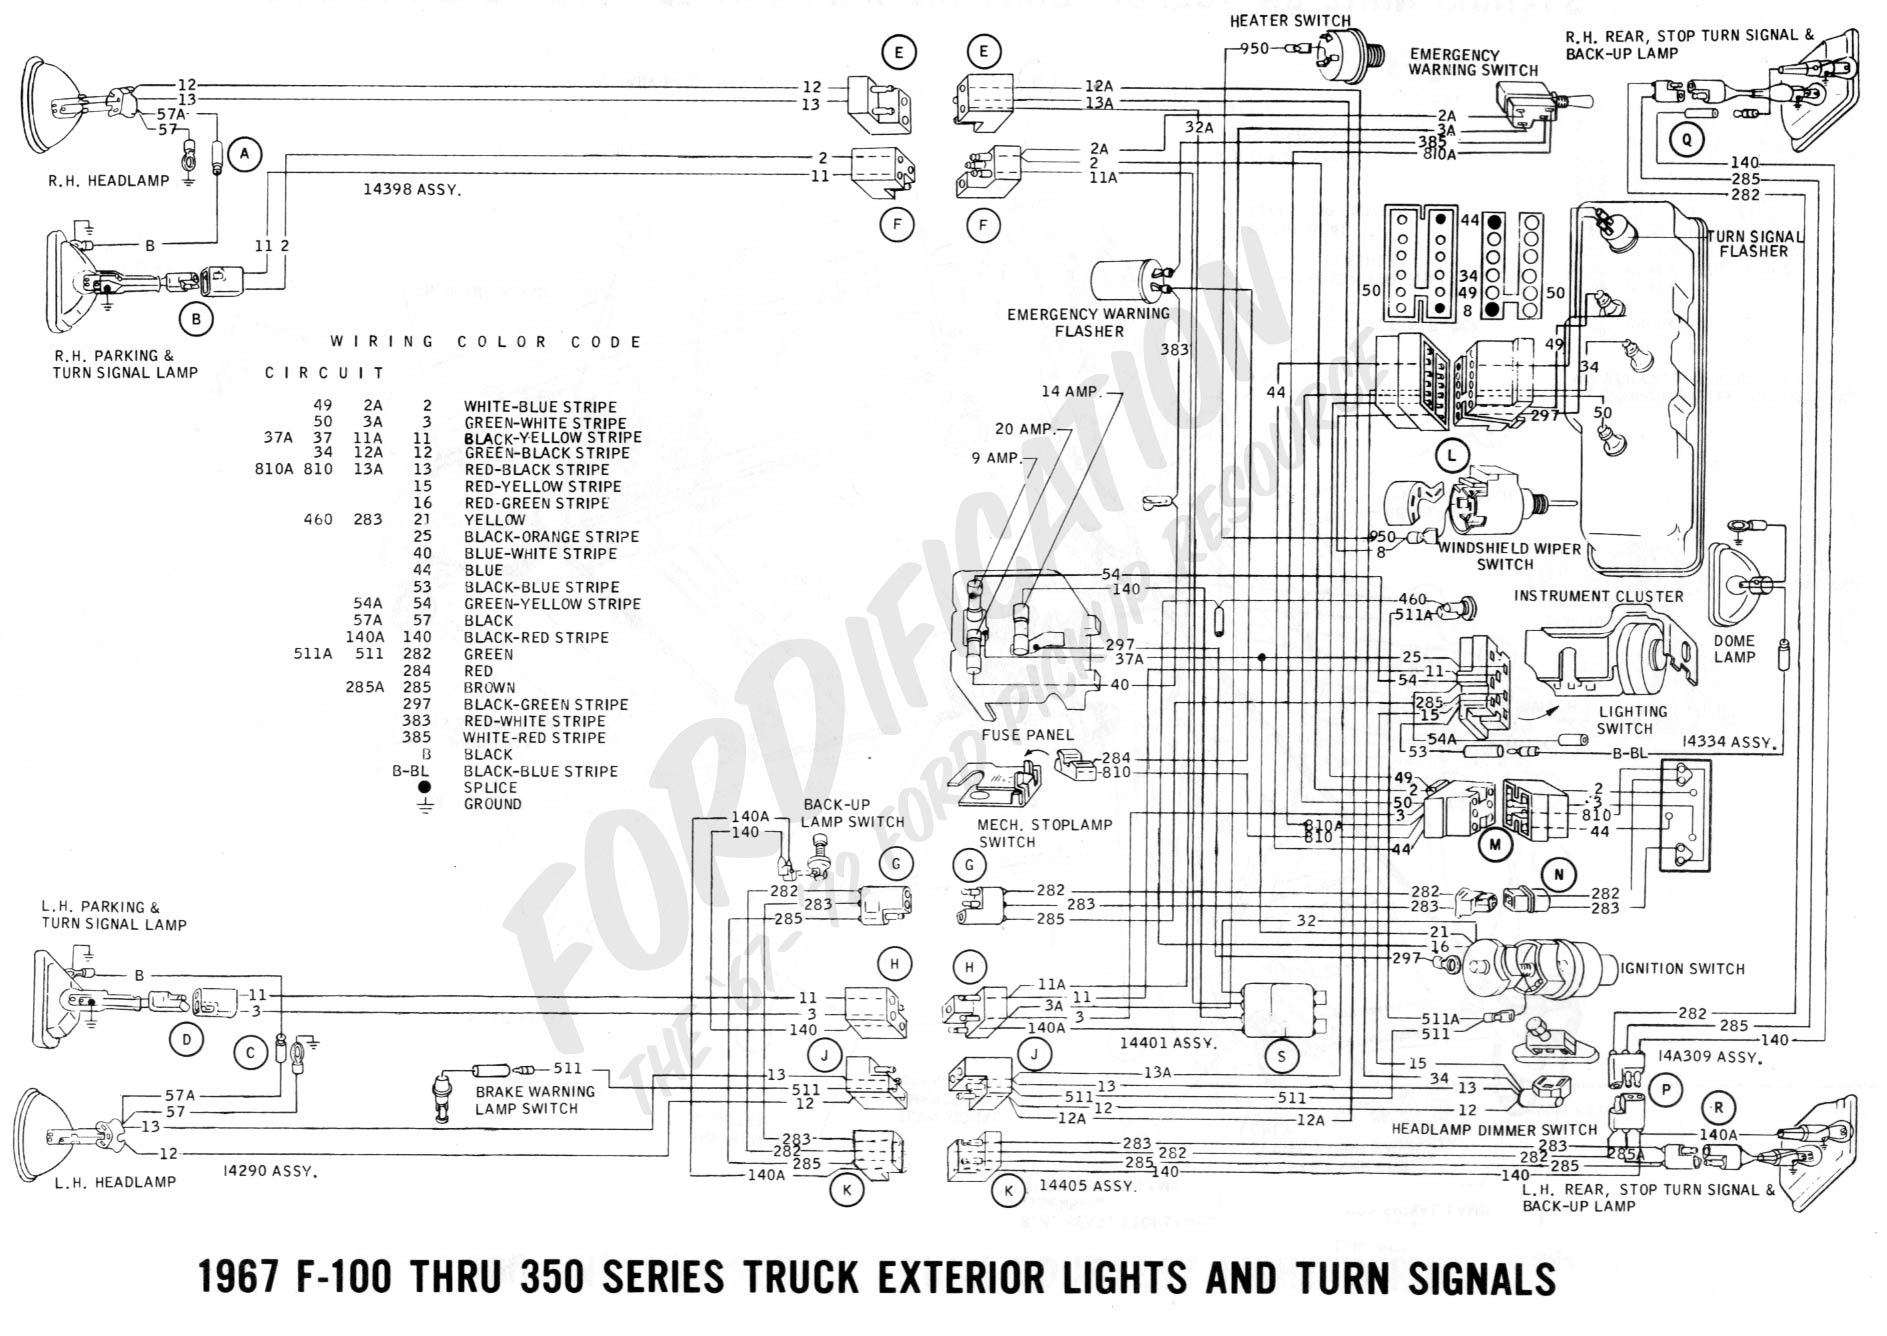 hight resolution of 1967 ford truck wiring diagram wiring diagram schematics 2008 dodge dakota electrical schematic 1967 f250 wiring